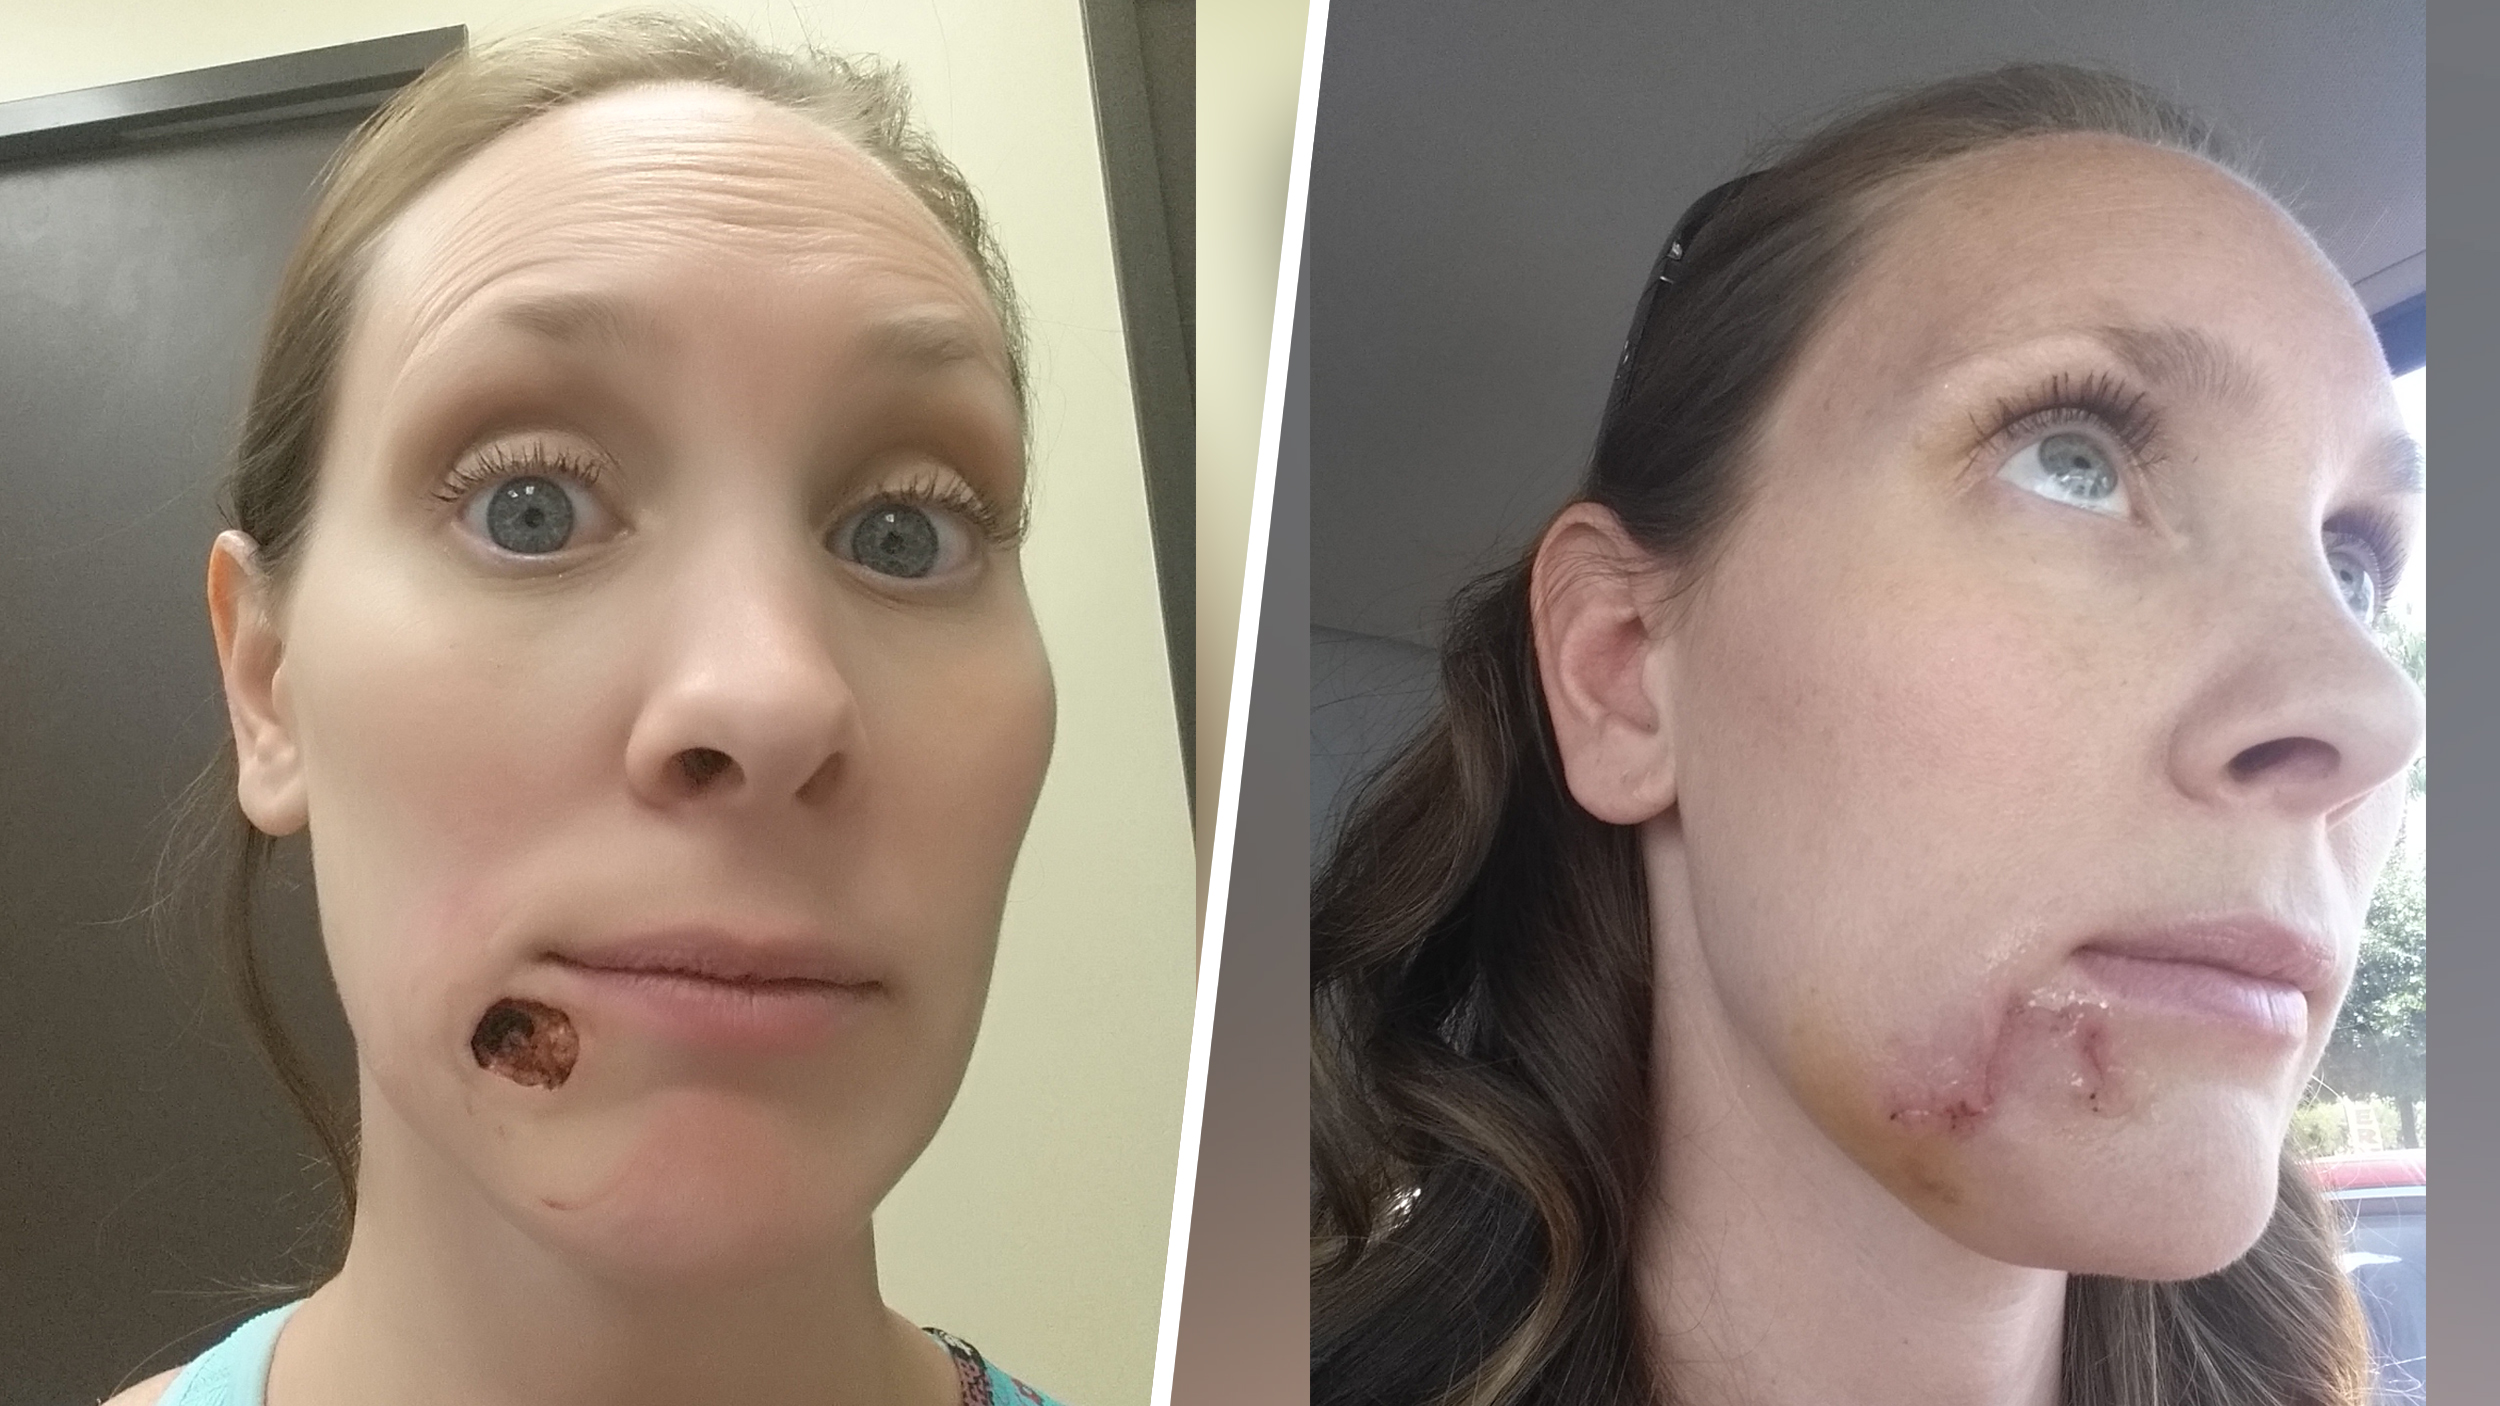 Woman shares story of 'pimple' that turned out to be